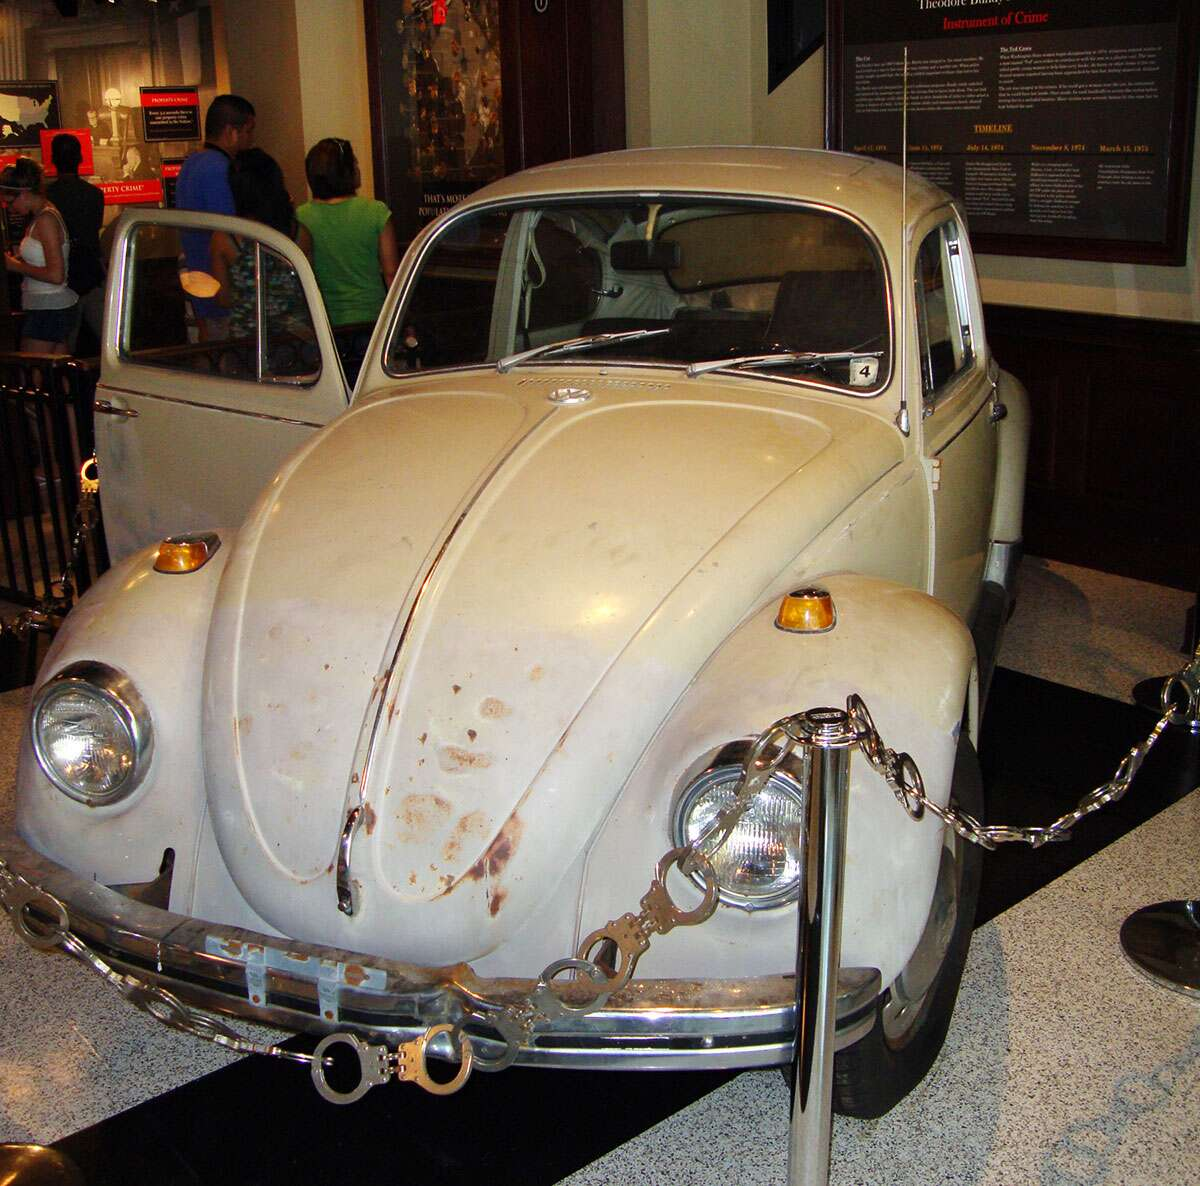 Bundy Drove A Beetle The Cars Of Serial Killers Drive Murdered Out 1955 Cadillac One More Prolific In Recorded History Killed At Least 30 People But May Have 100 Or Morehe Remained Coy About Exact